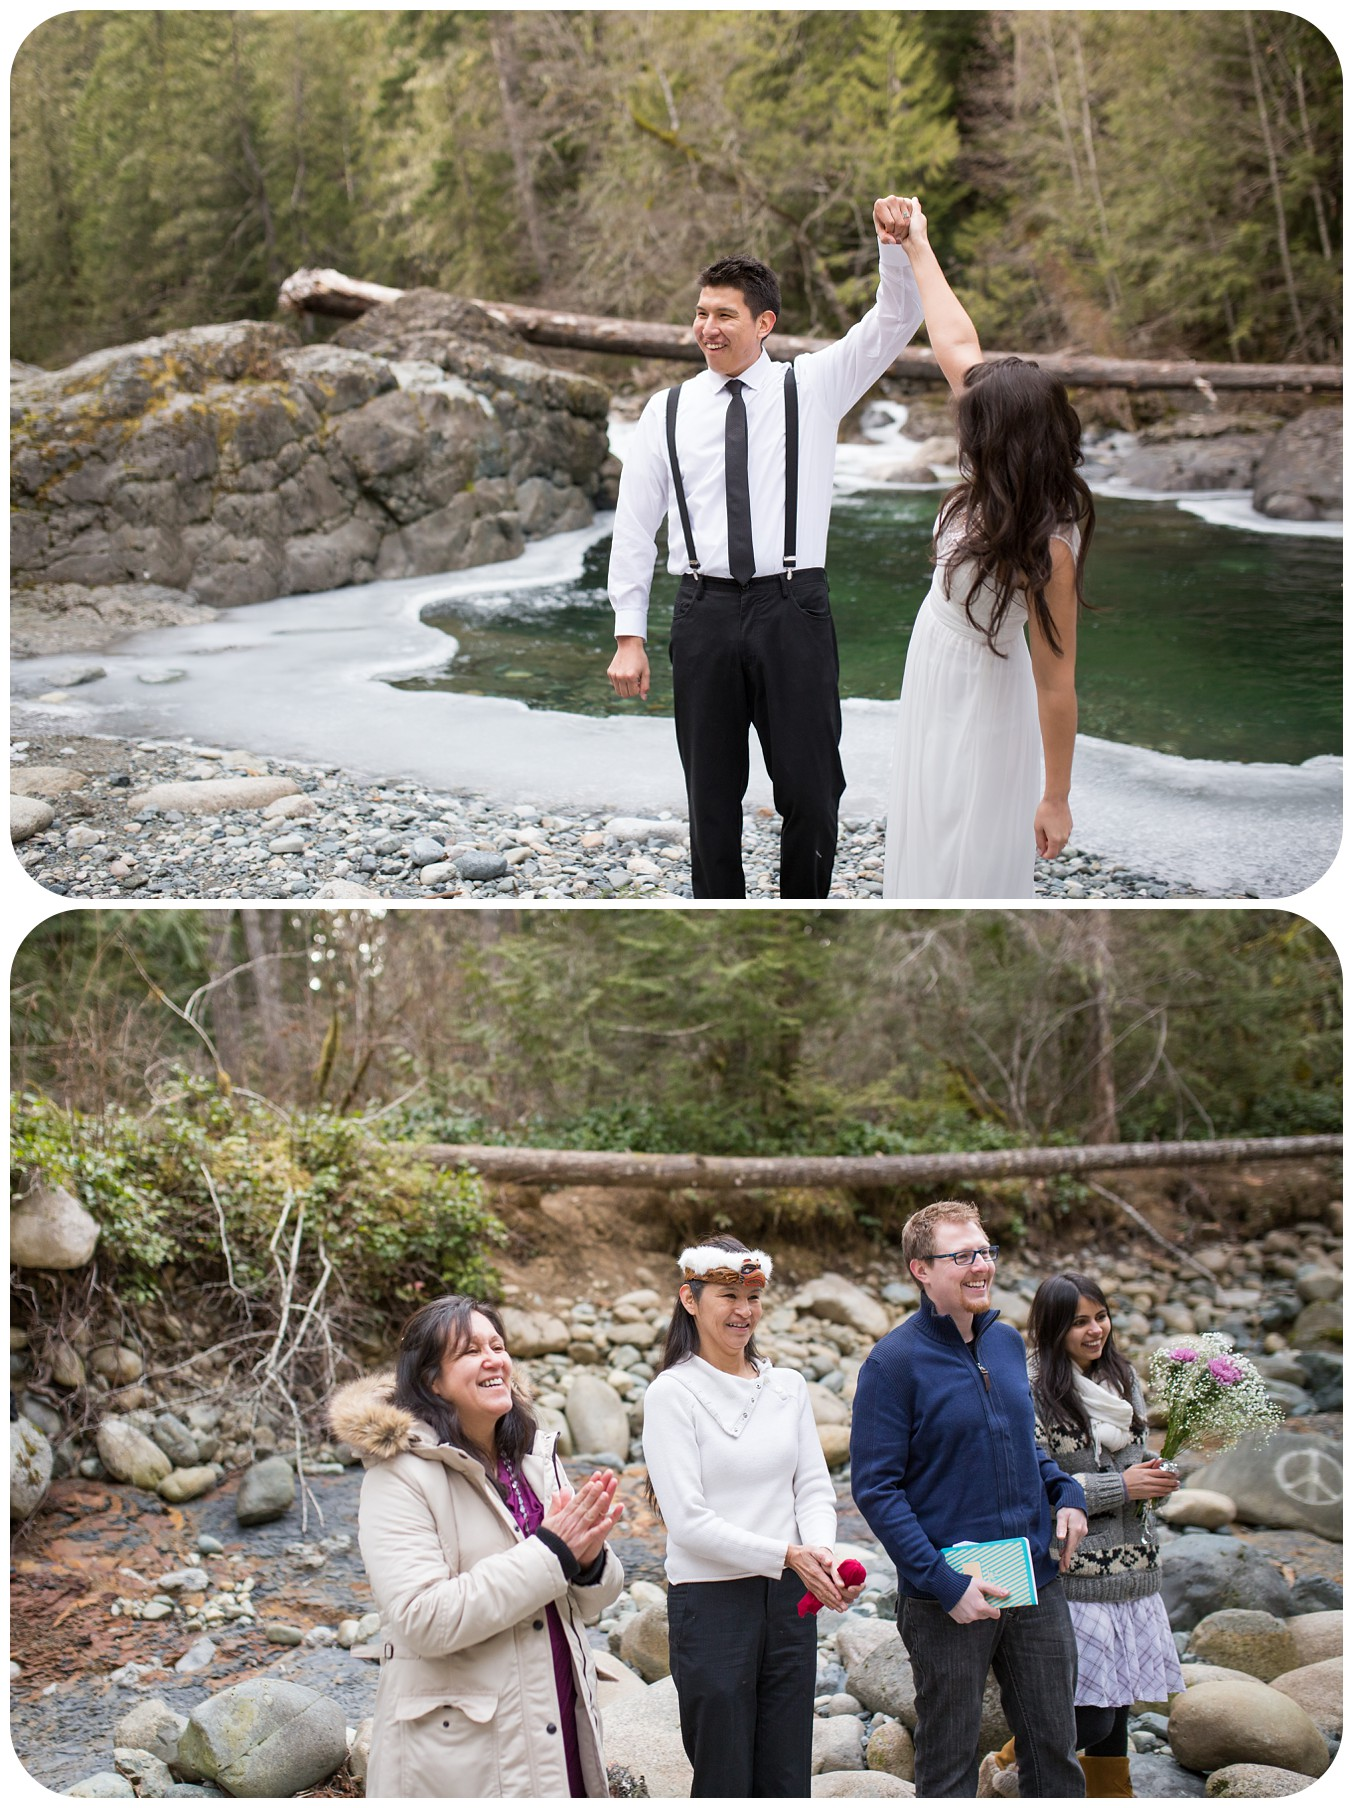 celebrating marriage, happy family at elopement, englishman river falls romantic elopement, vancouver island wedding photographer